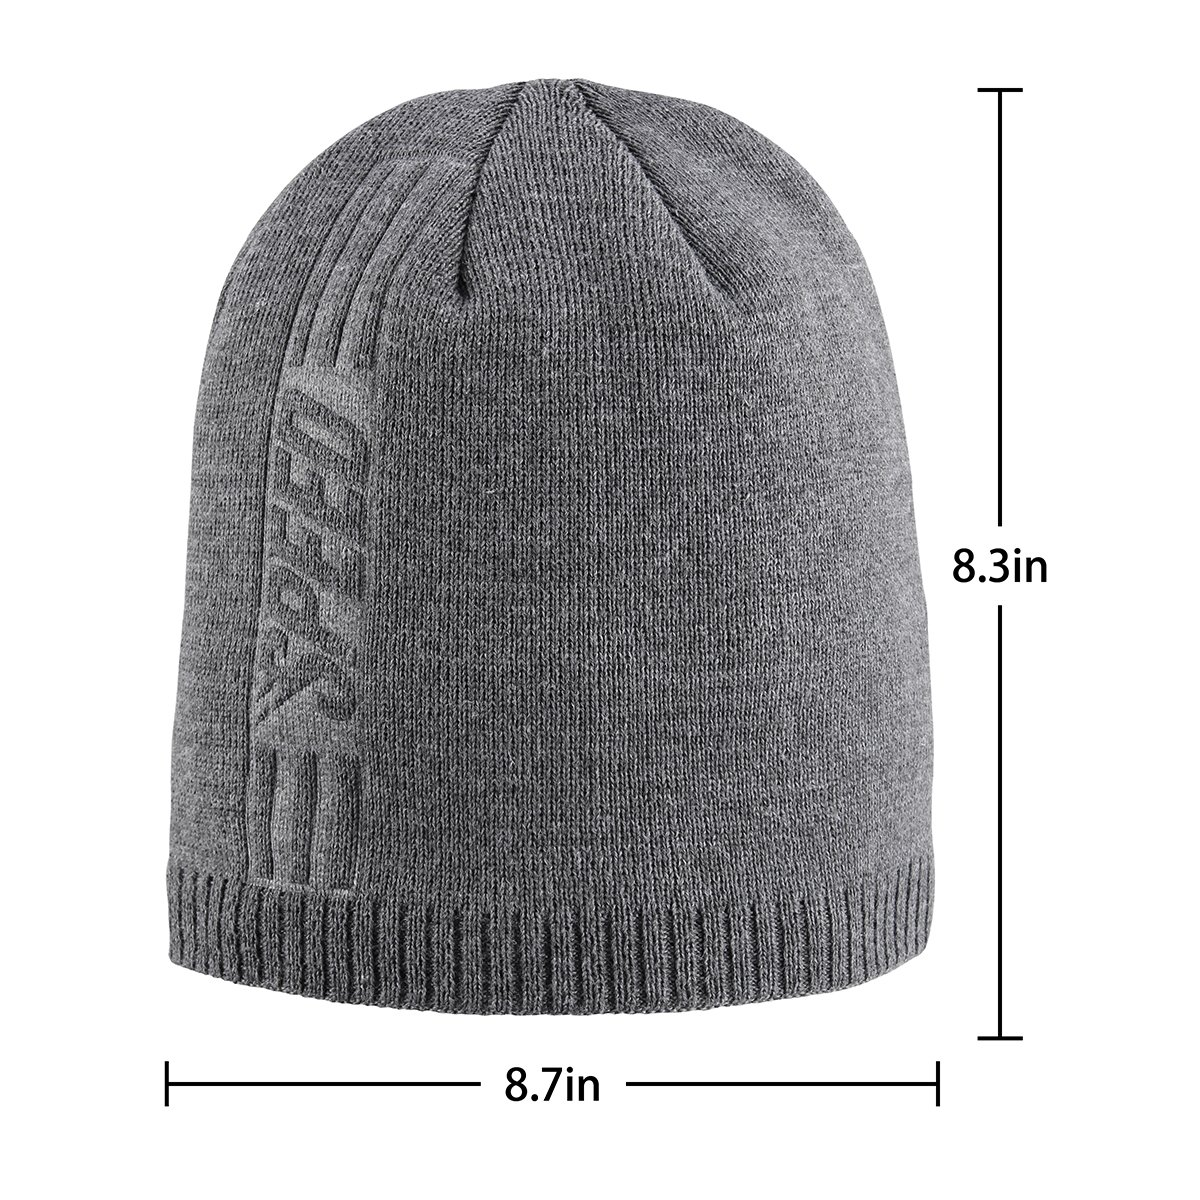 Bodvera Mens Winter Warm Knit Beanie Hats Tactical Fleece Plain Toboggan Ski Skull Cap 3 Colors